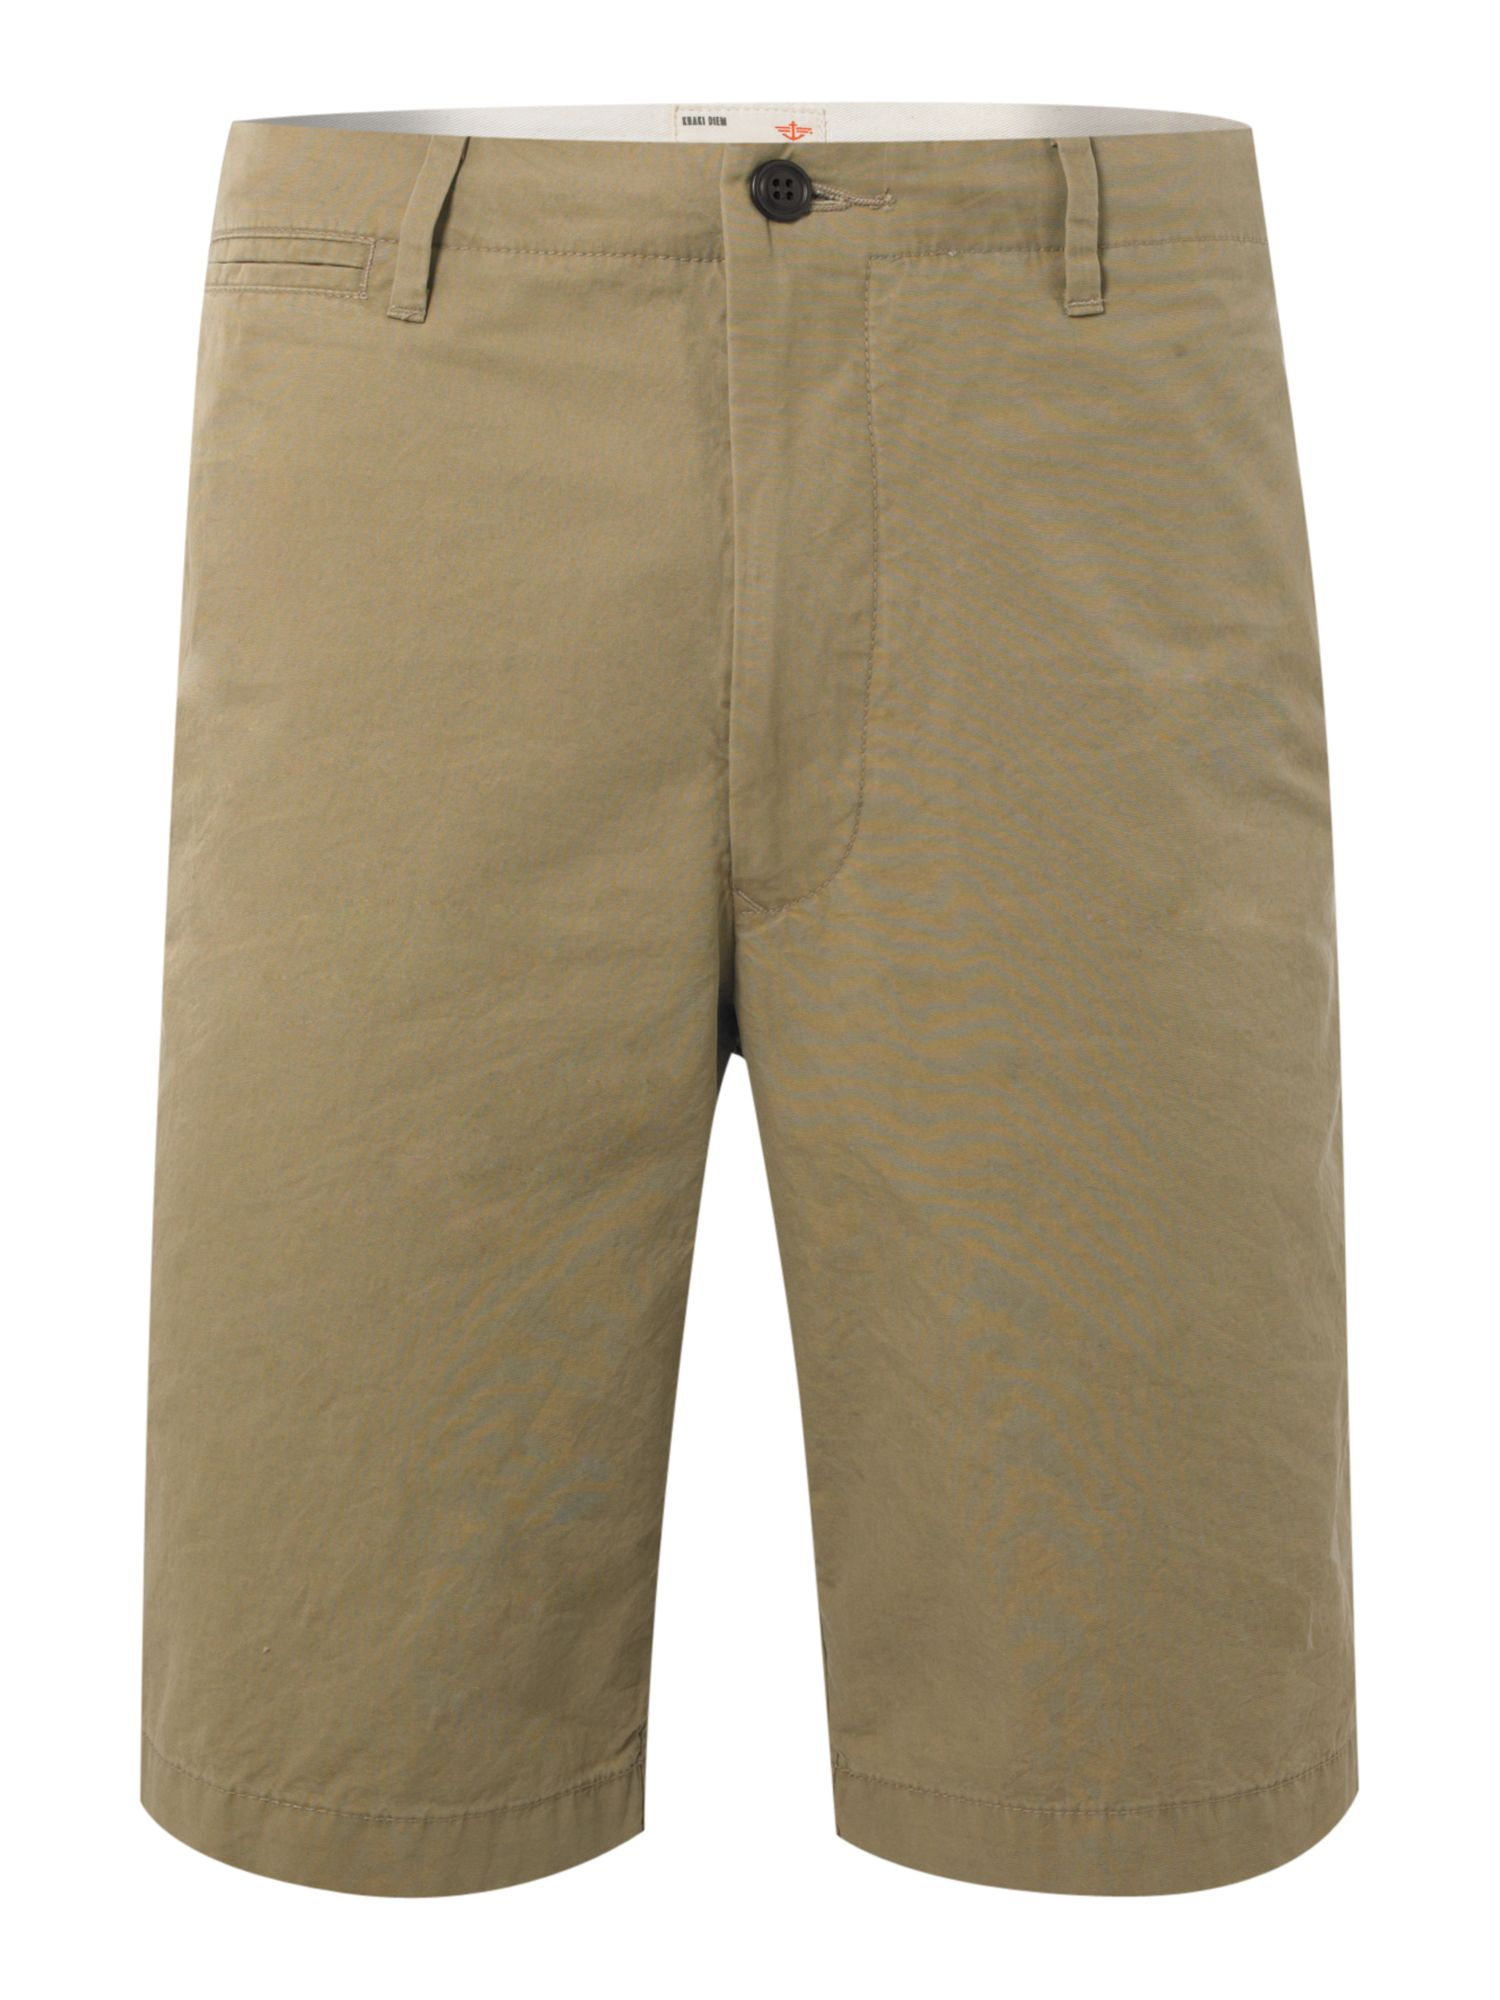 Always ahead of the curve. These men's slim-fit pants from Dockers feature styling that takes your look to a new level.